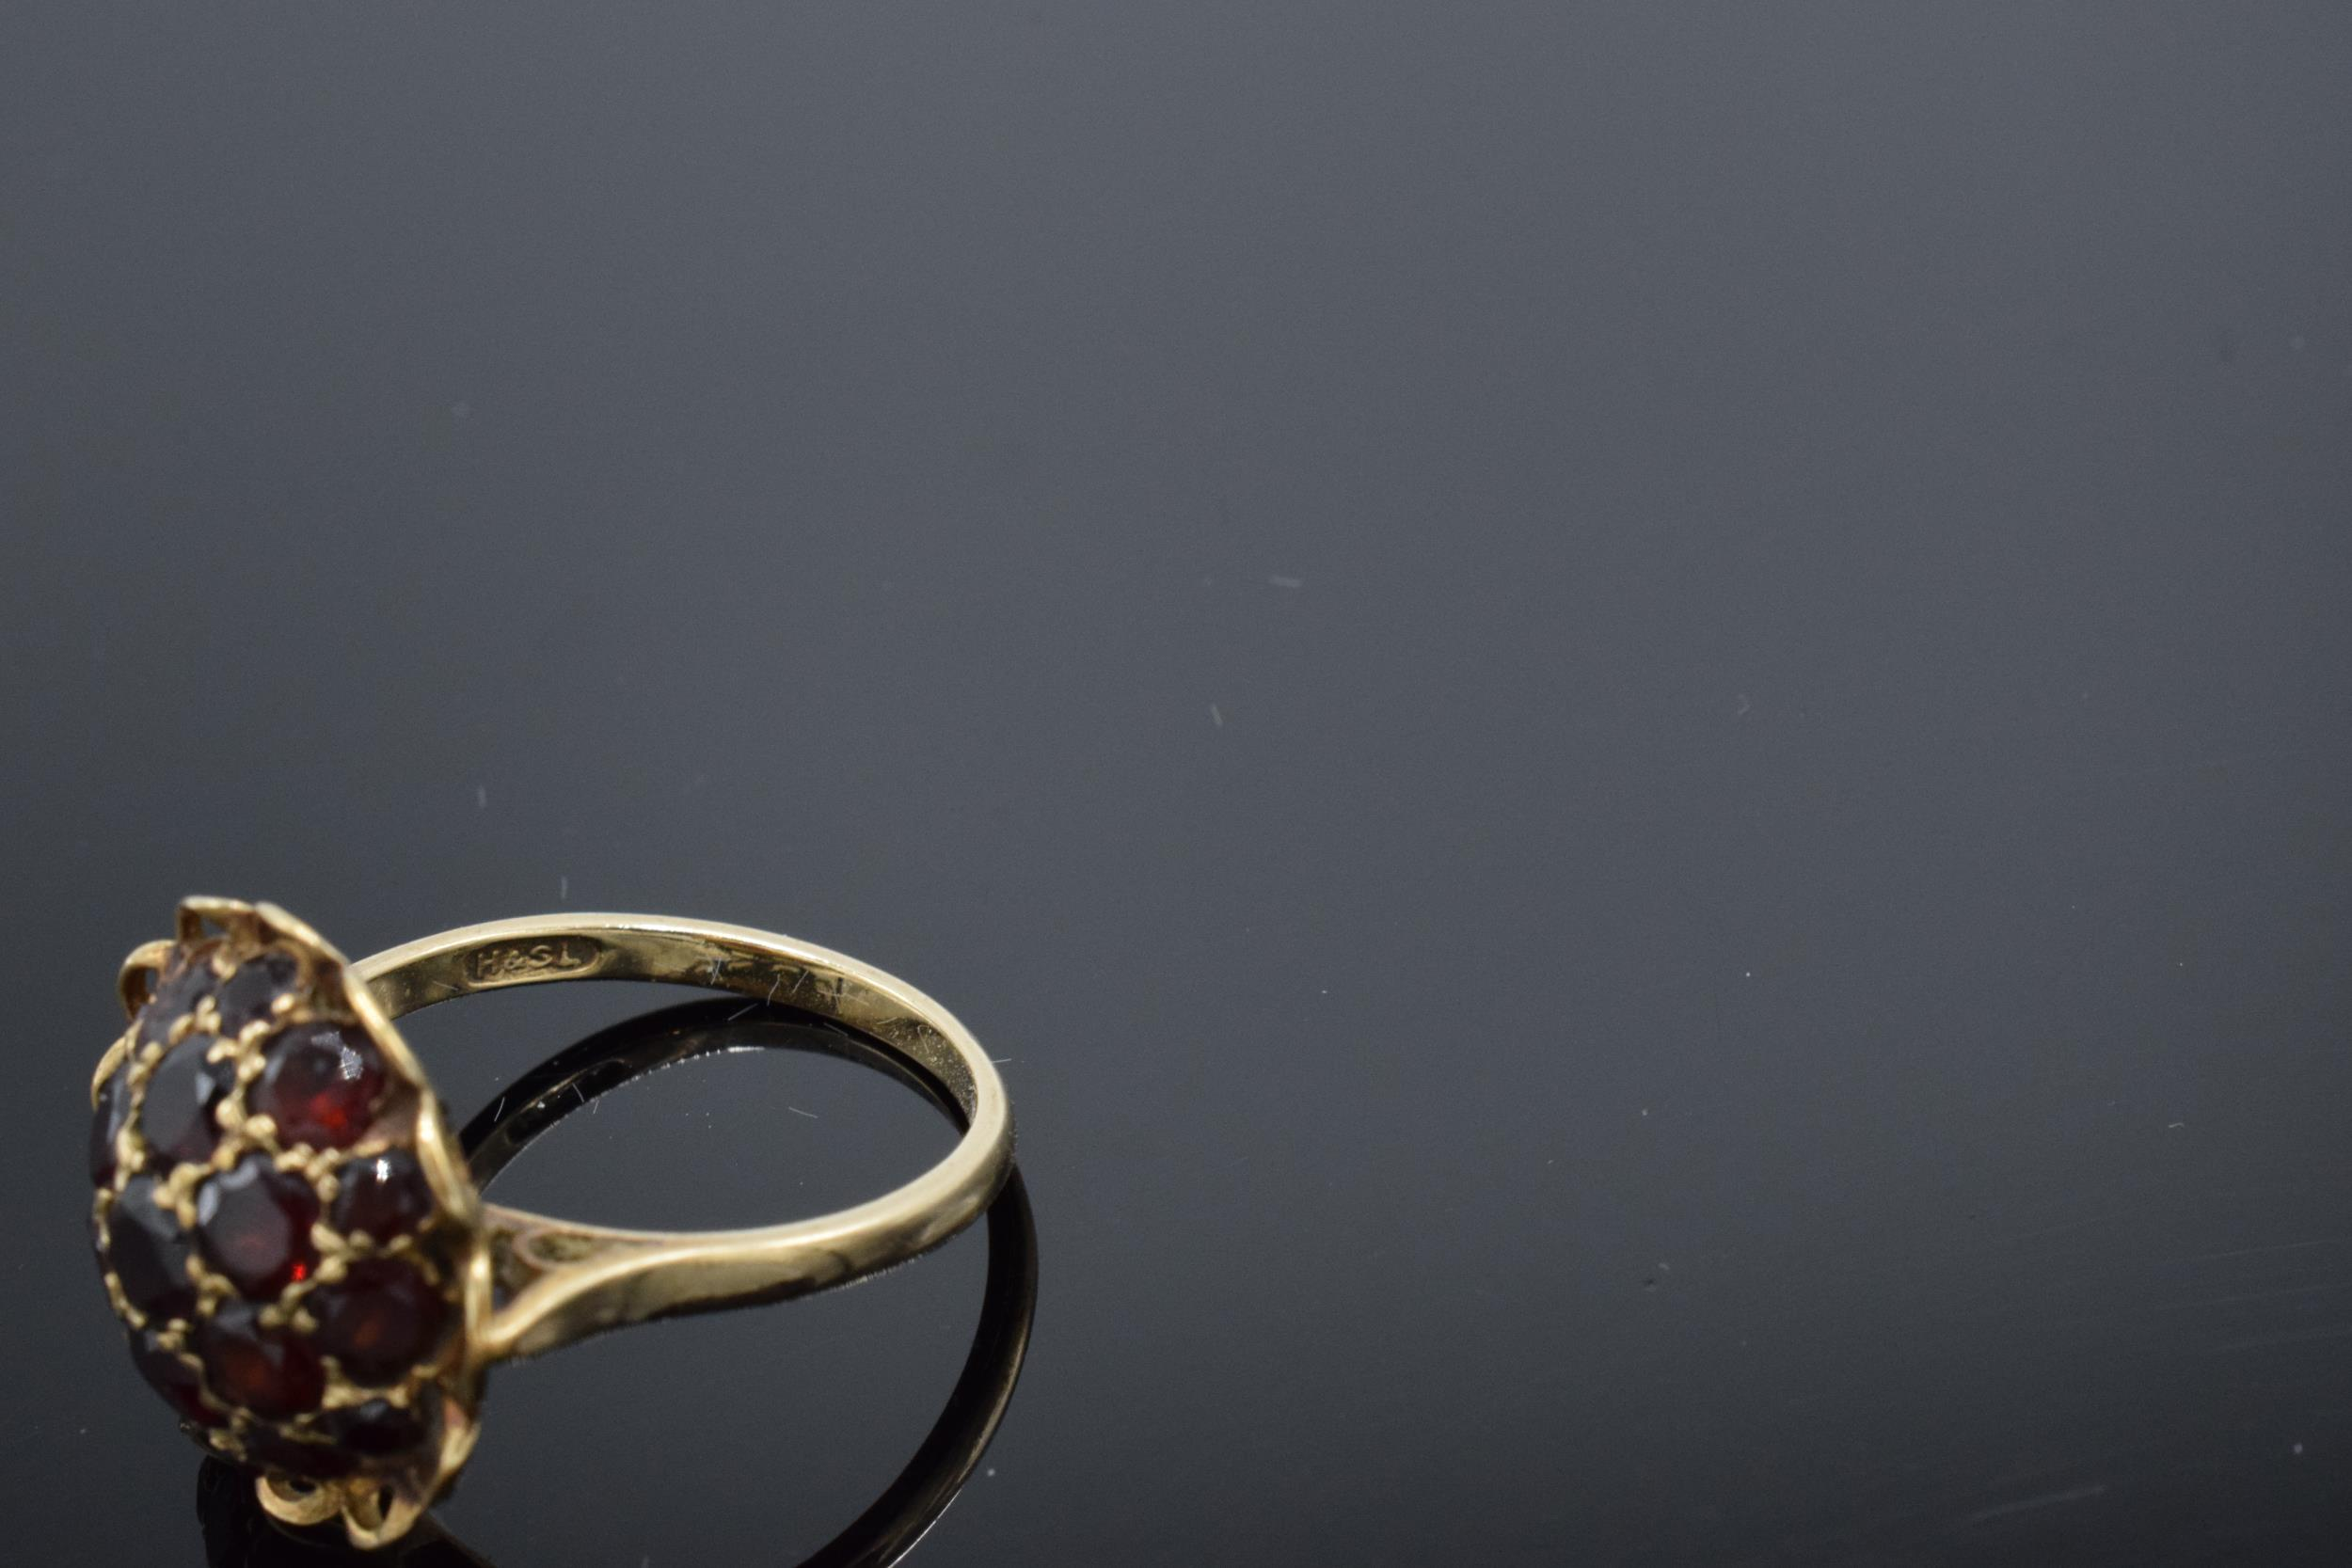 A 9ct gold dress ring set with garnet stones. 3.6 grams. - Image 4 of 4